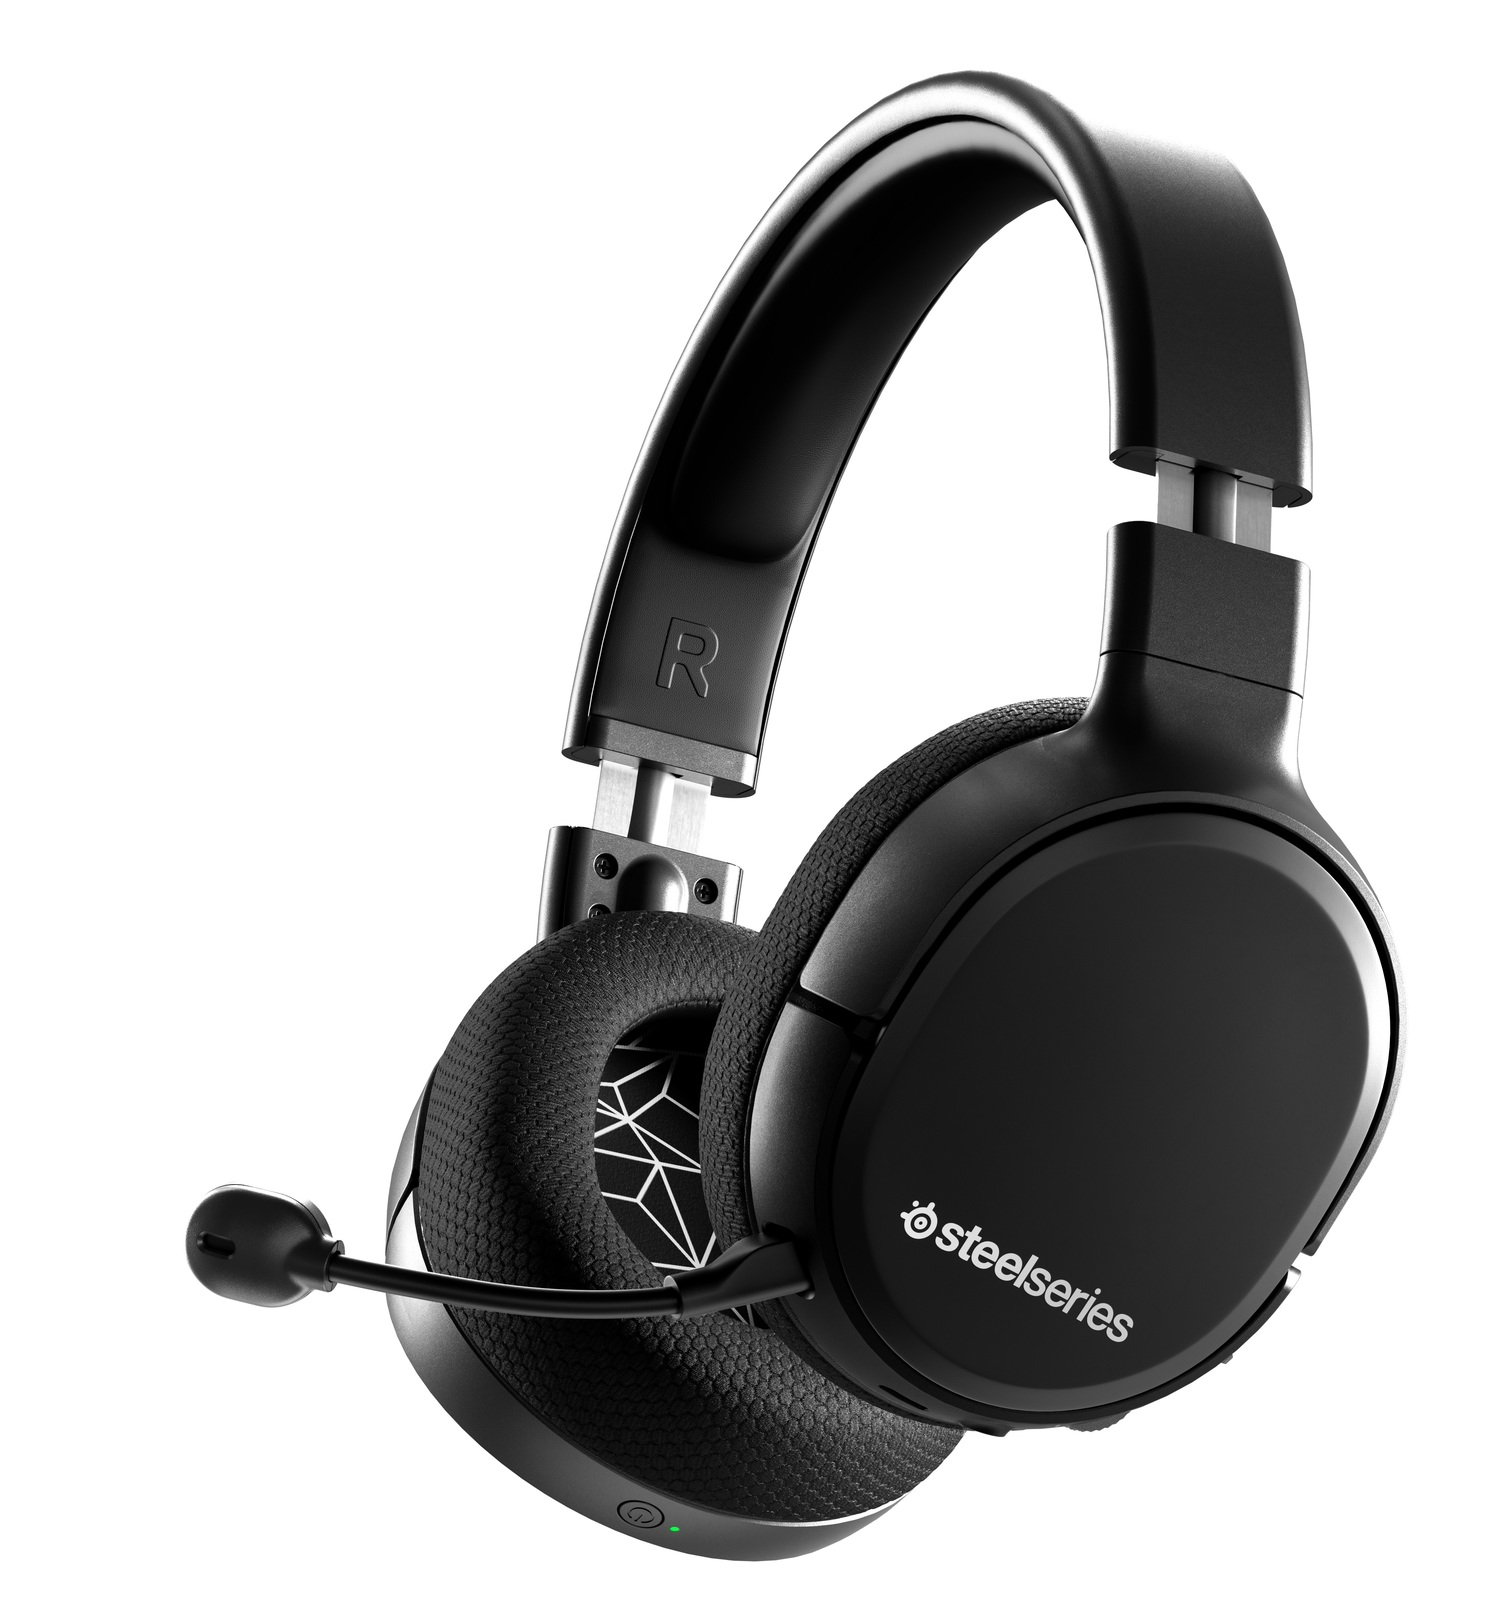 SteelSeries Arctis 1 Wireless Gaming Headset (Black) screenshot